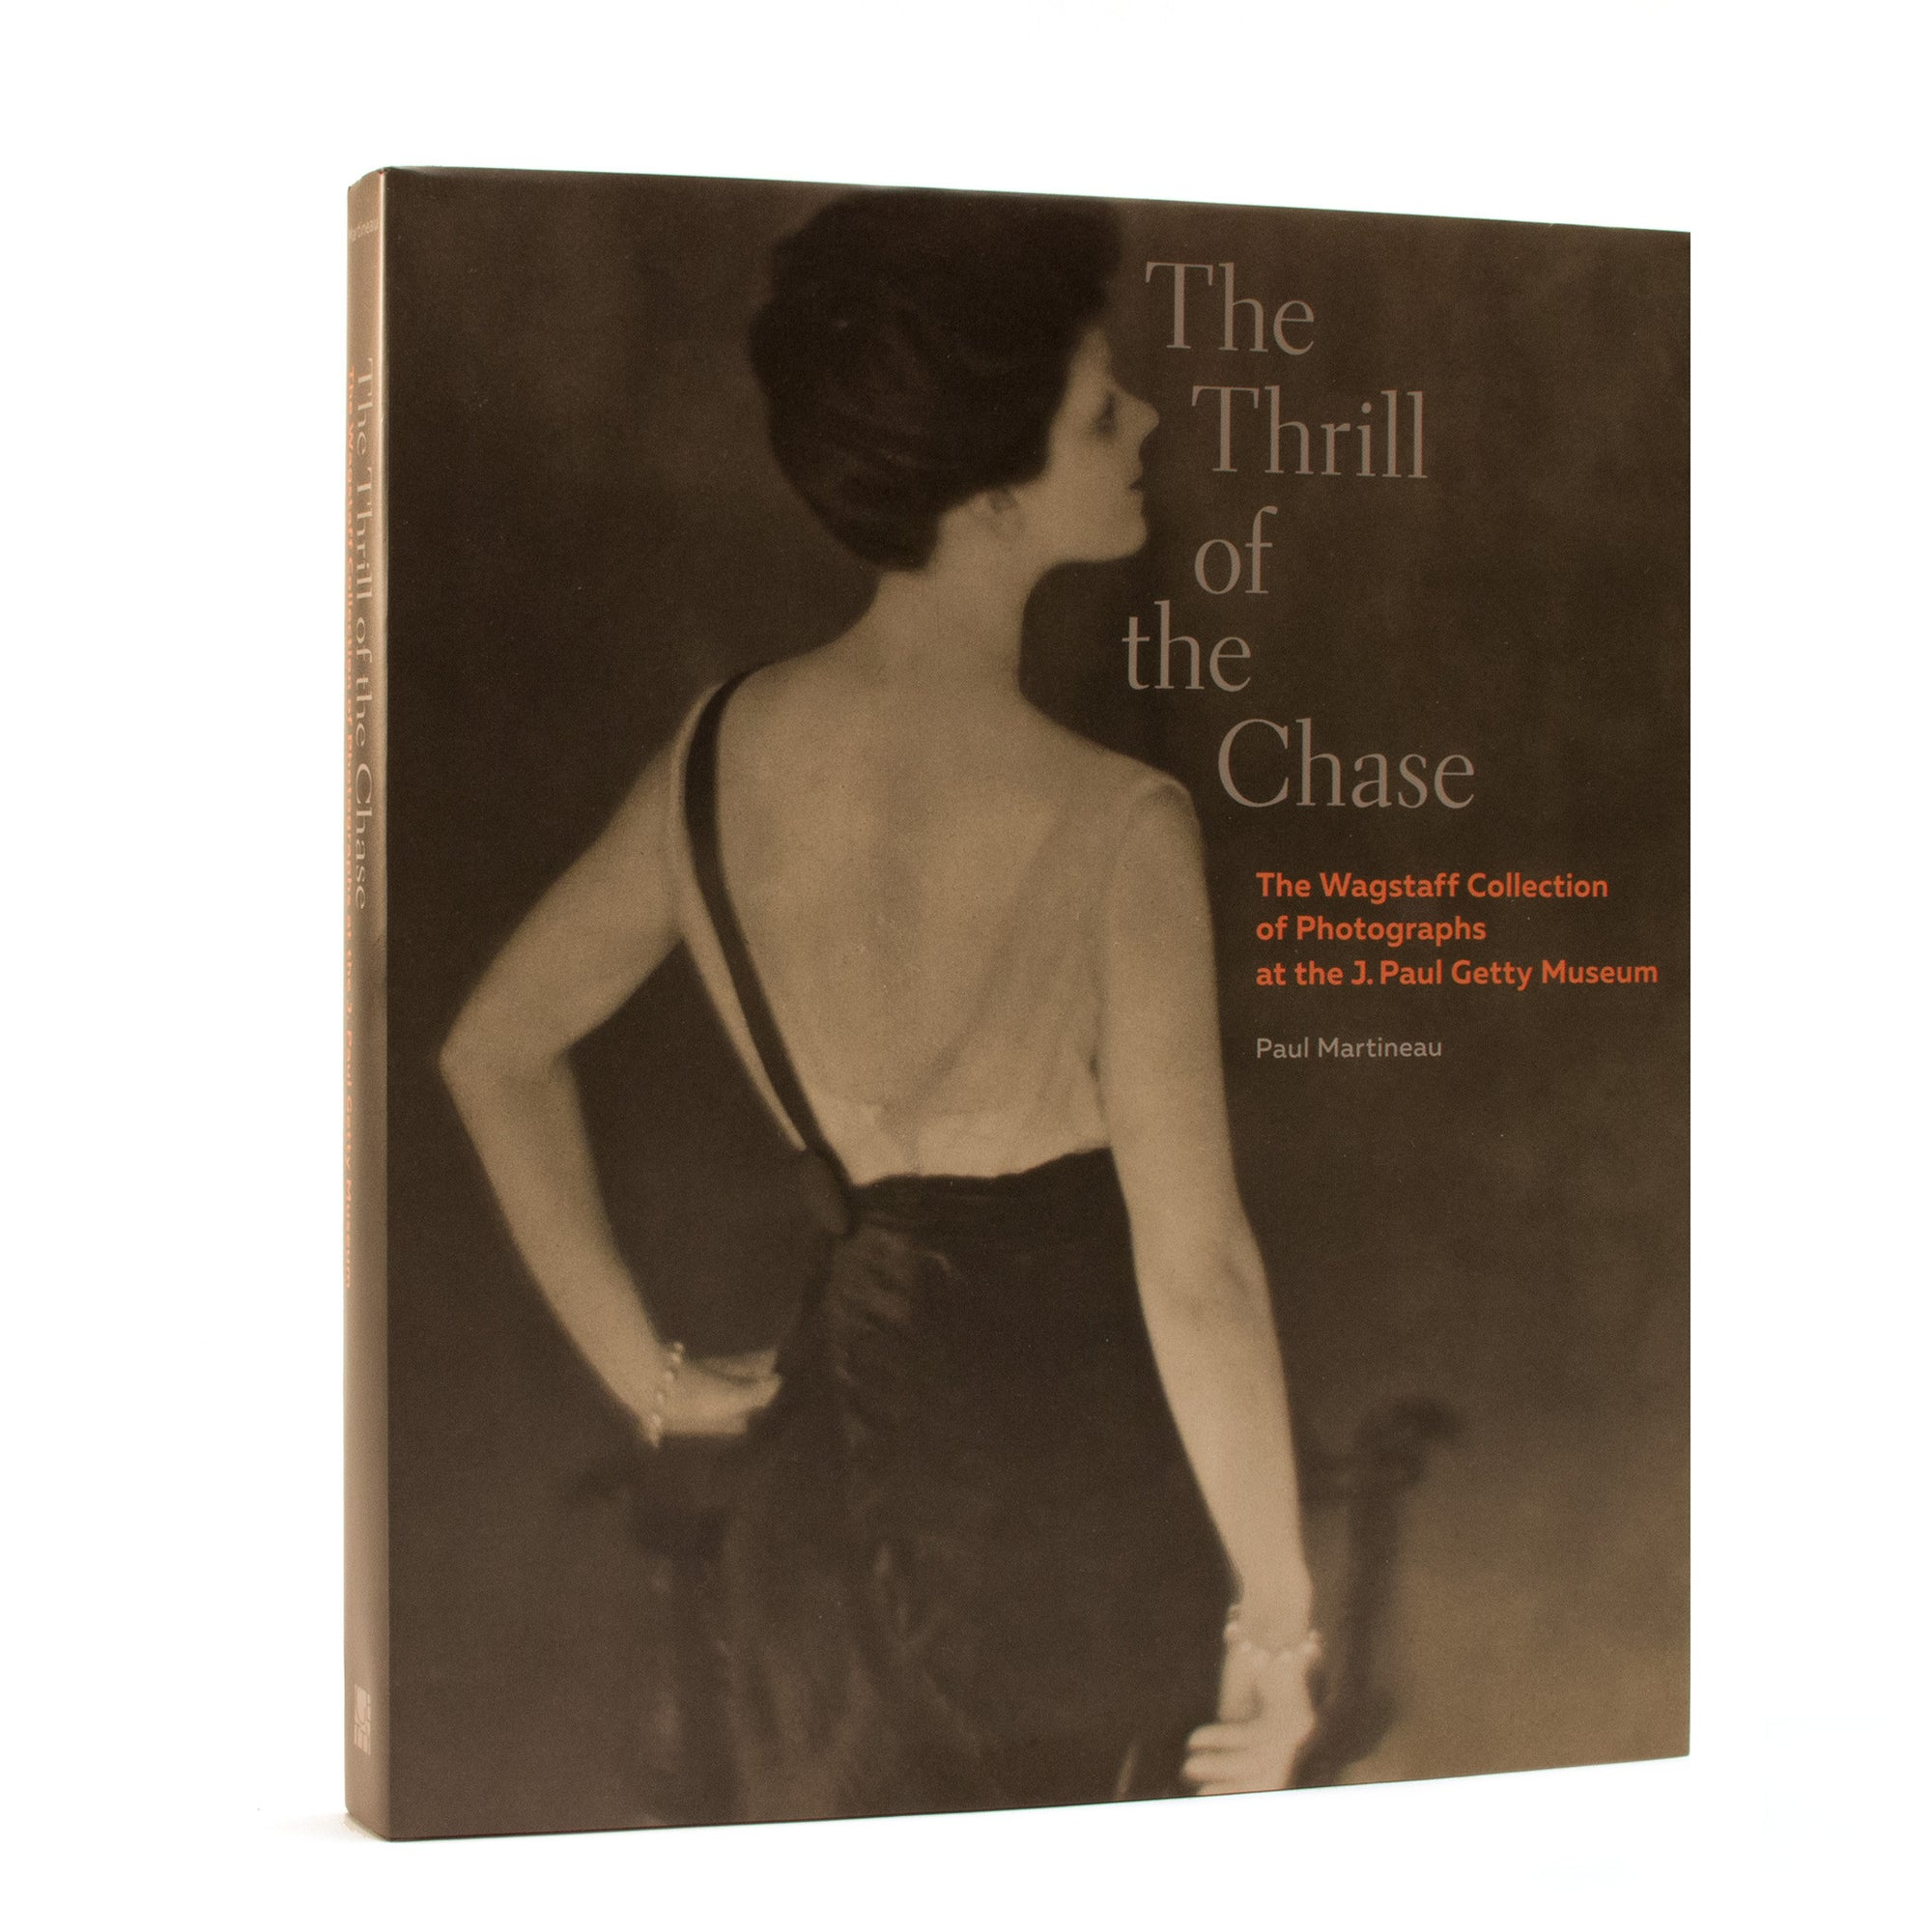 The Thrill of the Chase: The Wagstaff Collection of Photographs at the J. Paul Getty Museum | Getty Store